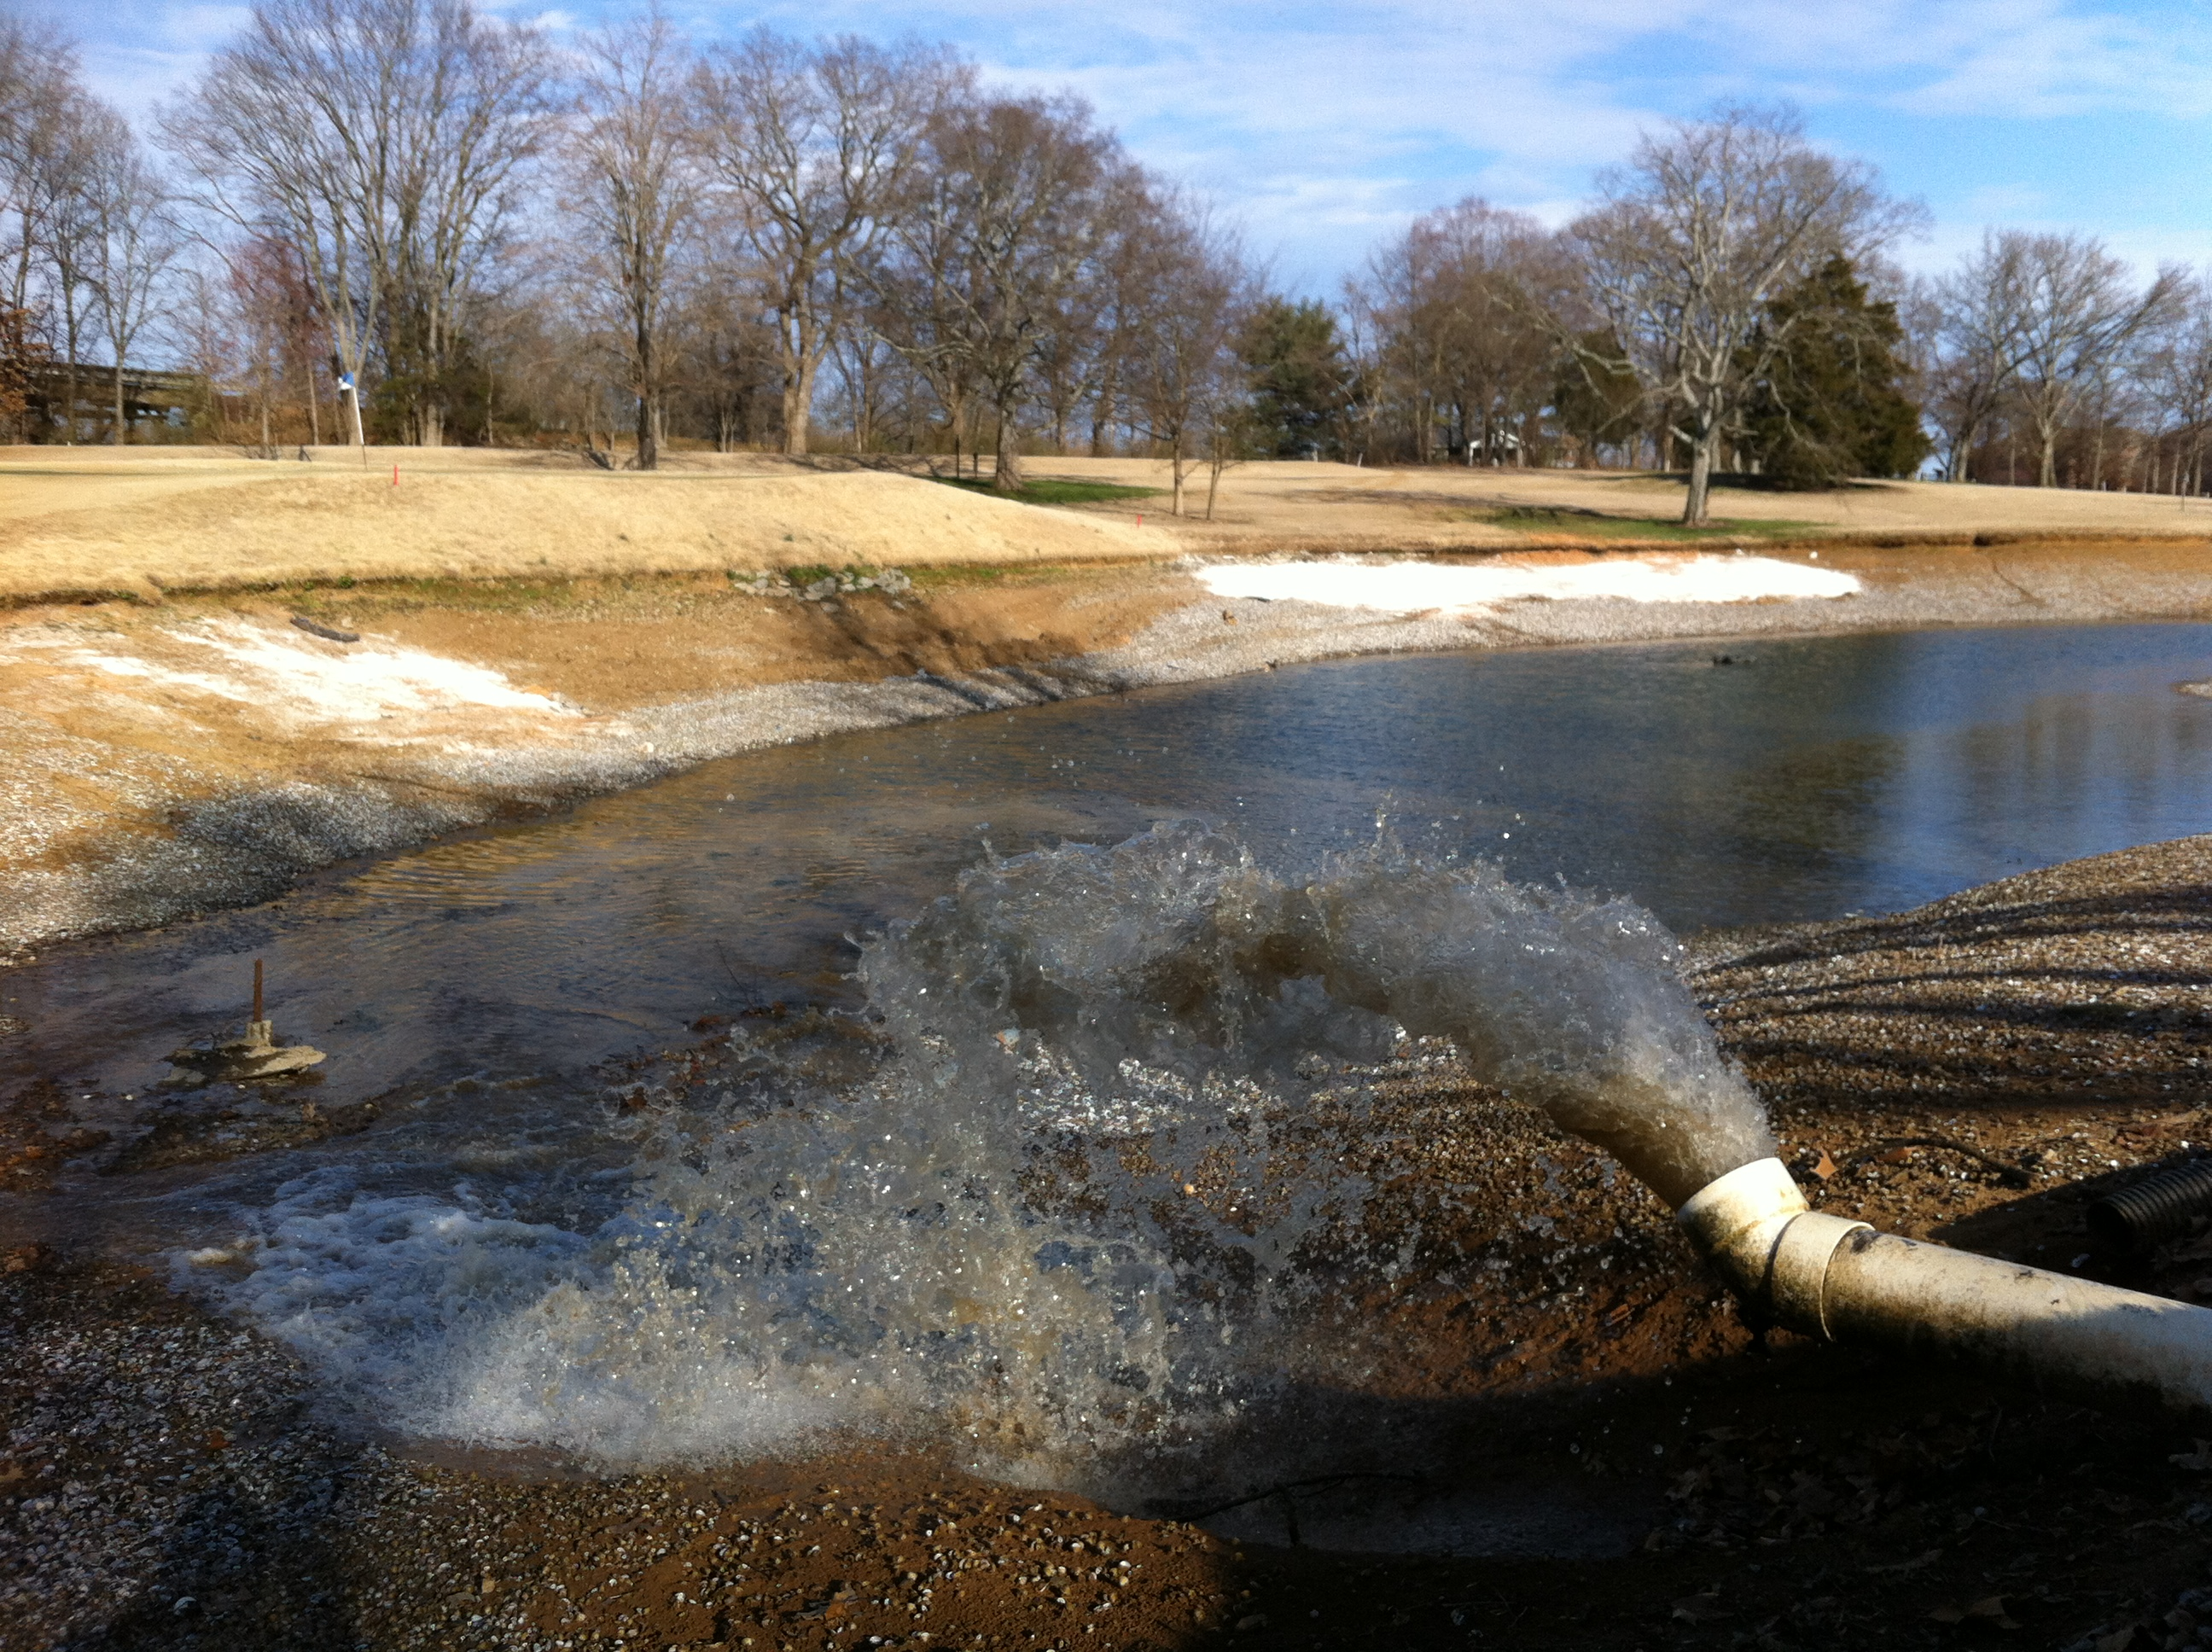 Water Flowing From the Transfer Station